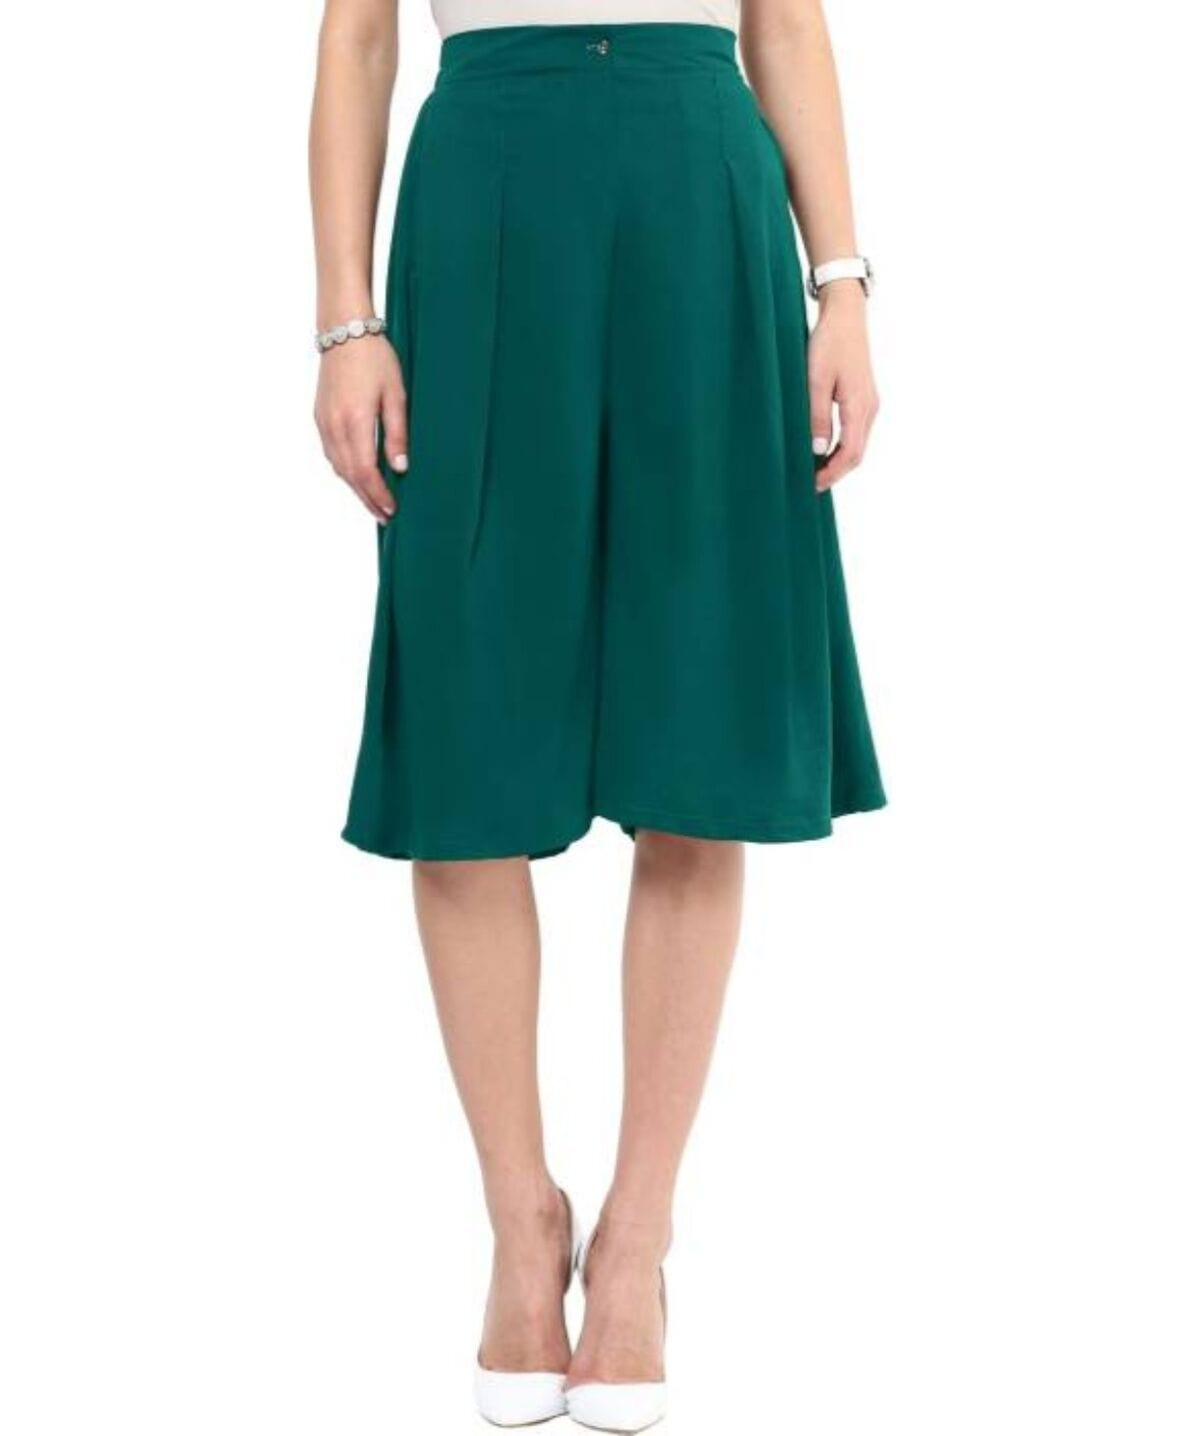 Uptownie Green Knee Length Adjustable Culottes 1 Sale at 399